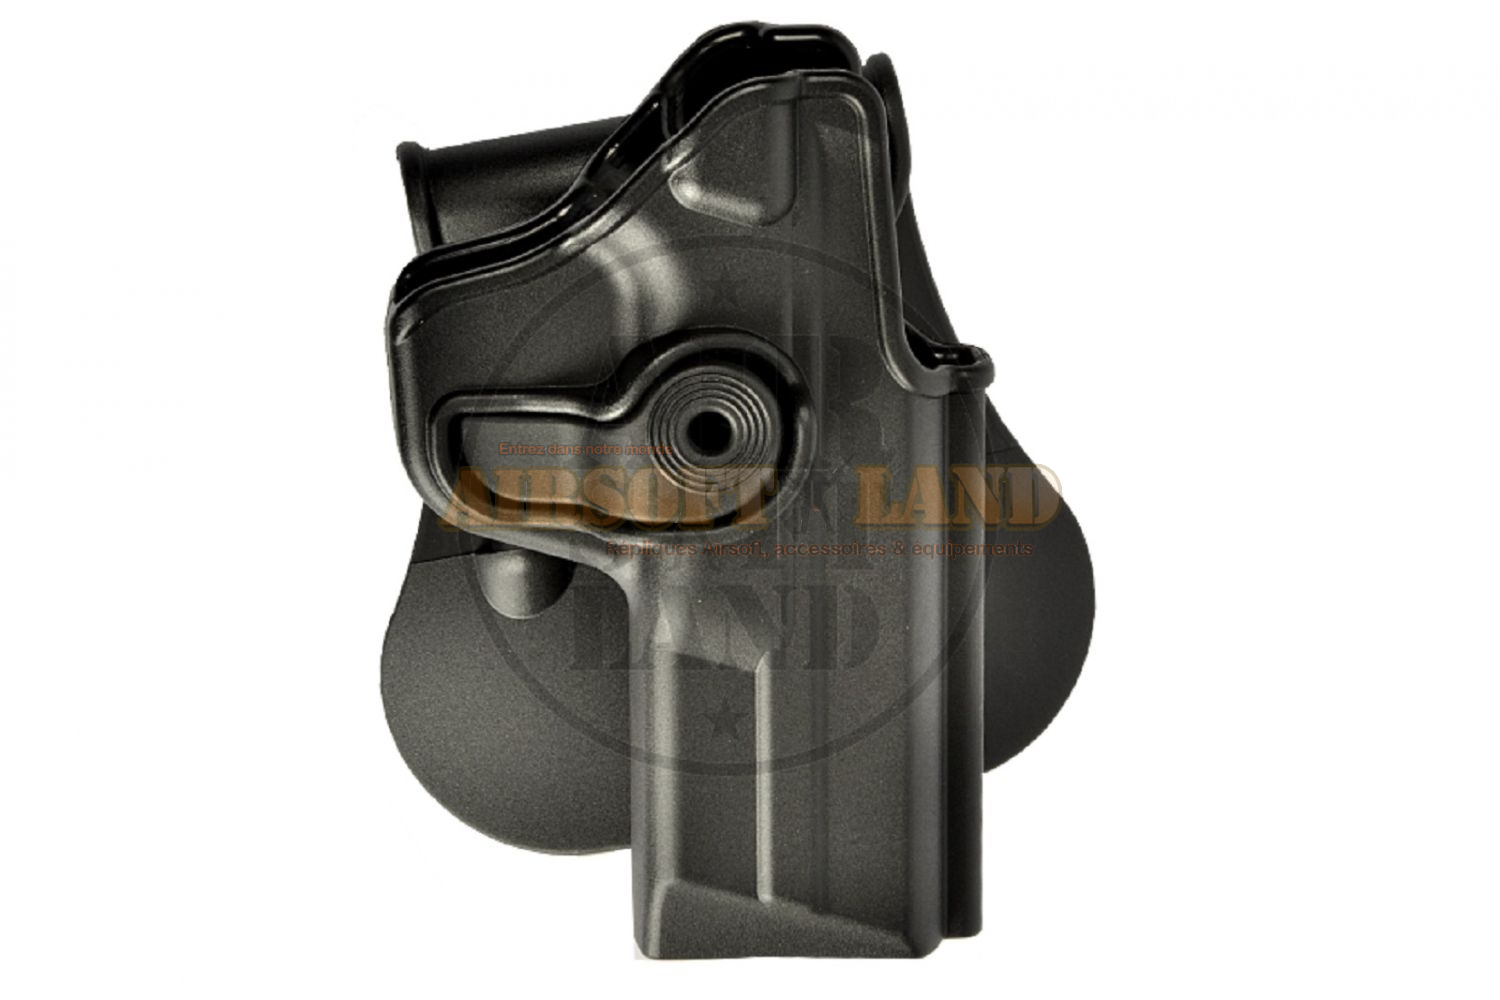 Paddle roto holster IMI pour Smith & Wesson M&P